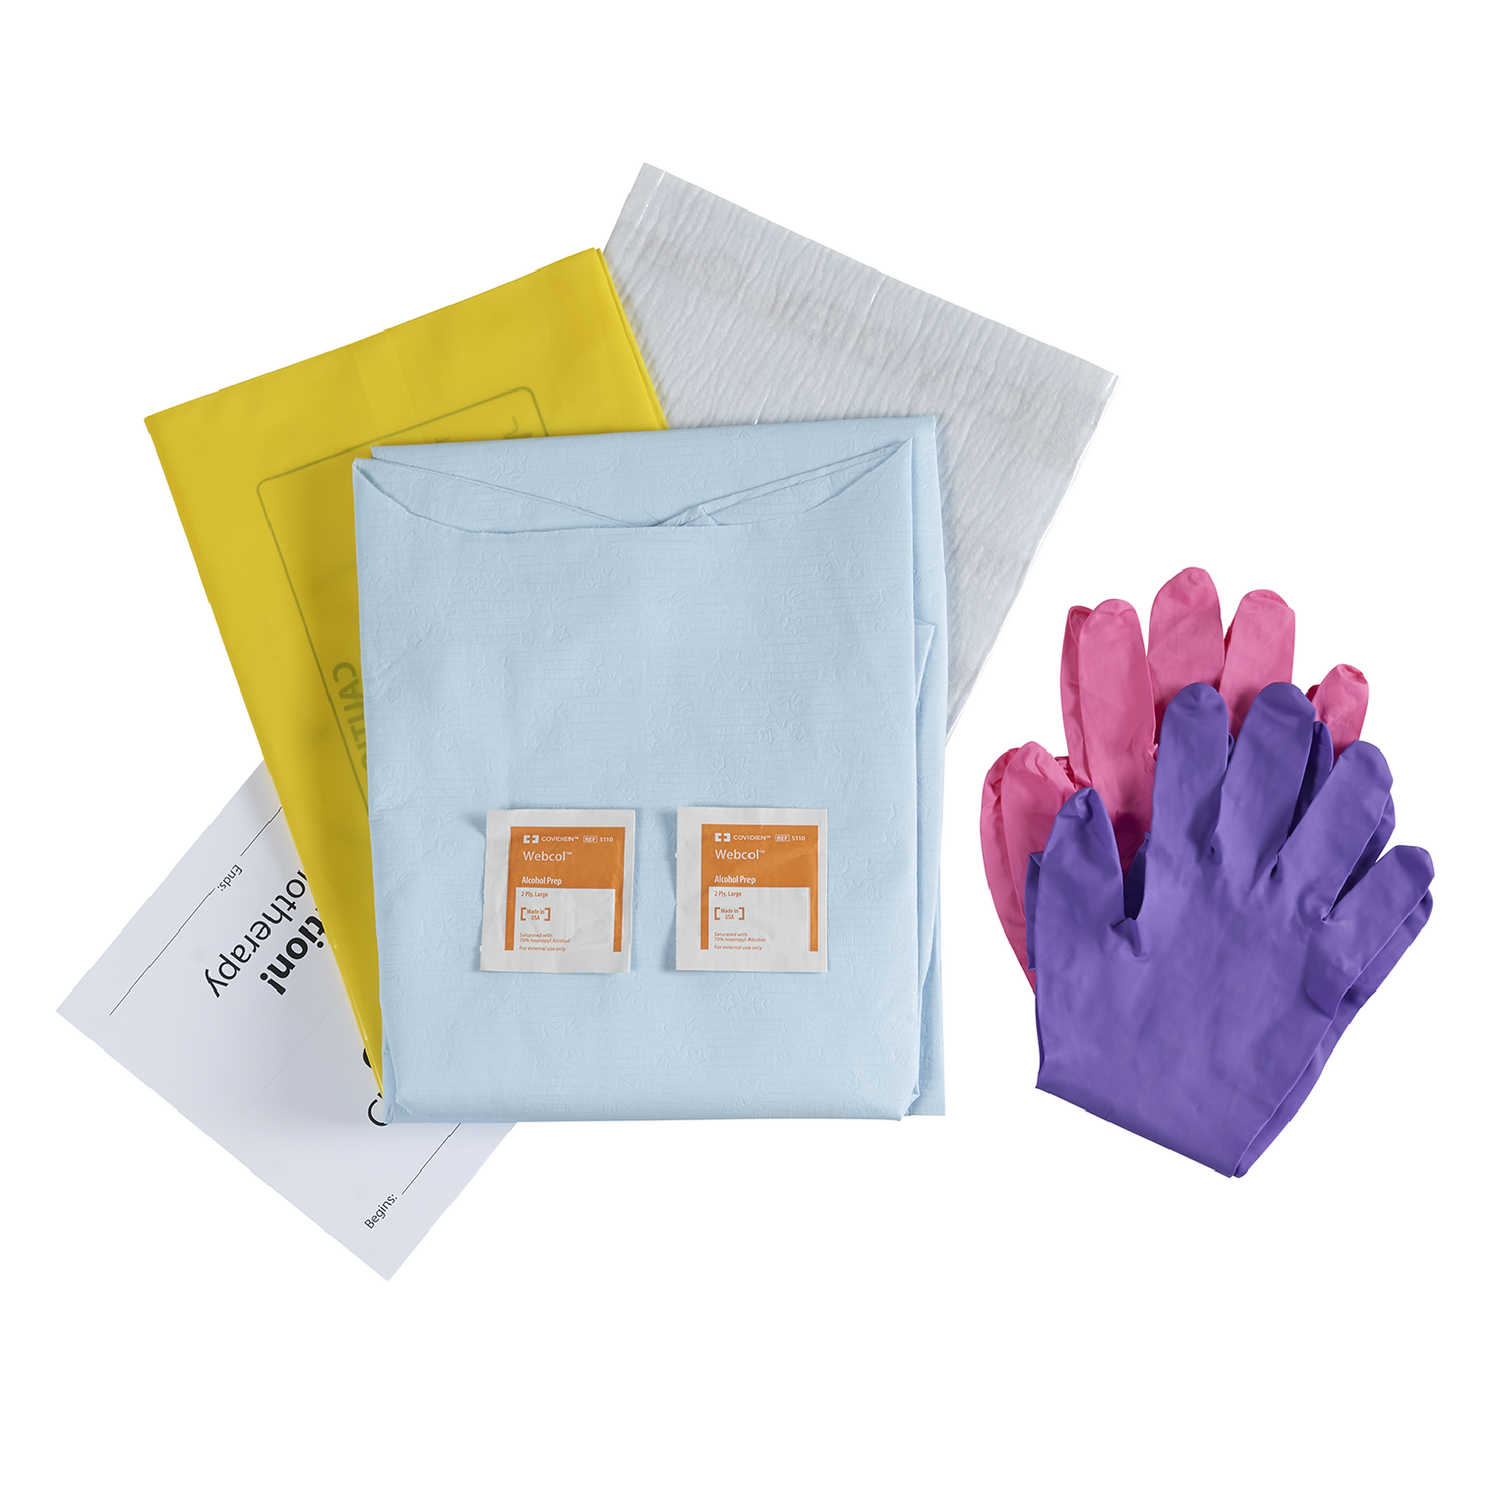 CHEMO GEAR Administration Kit For Use with Hazardous and Chemotherapy Drugs (Contents)